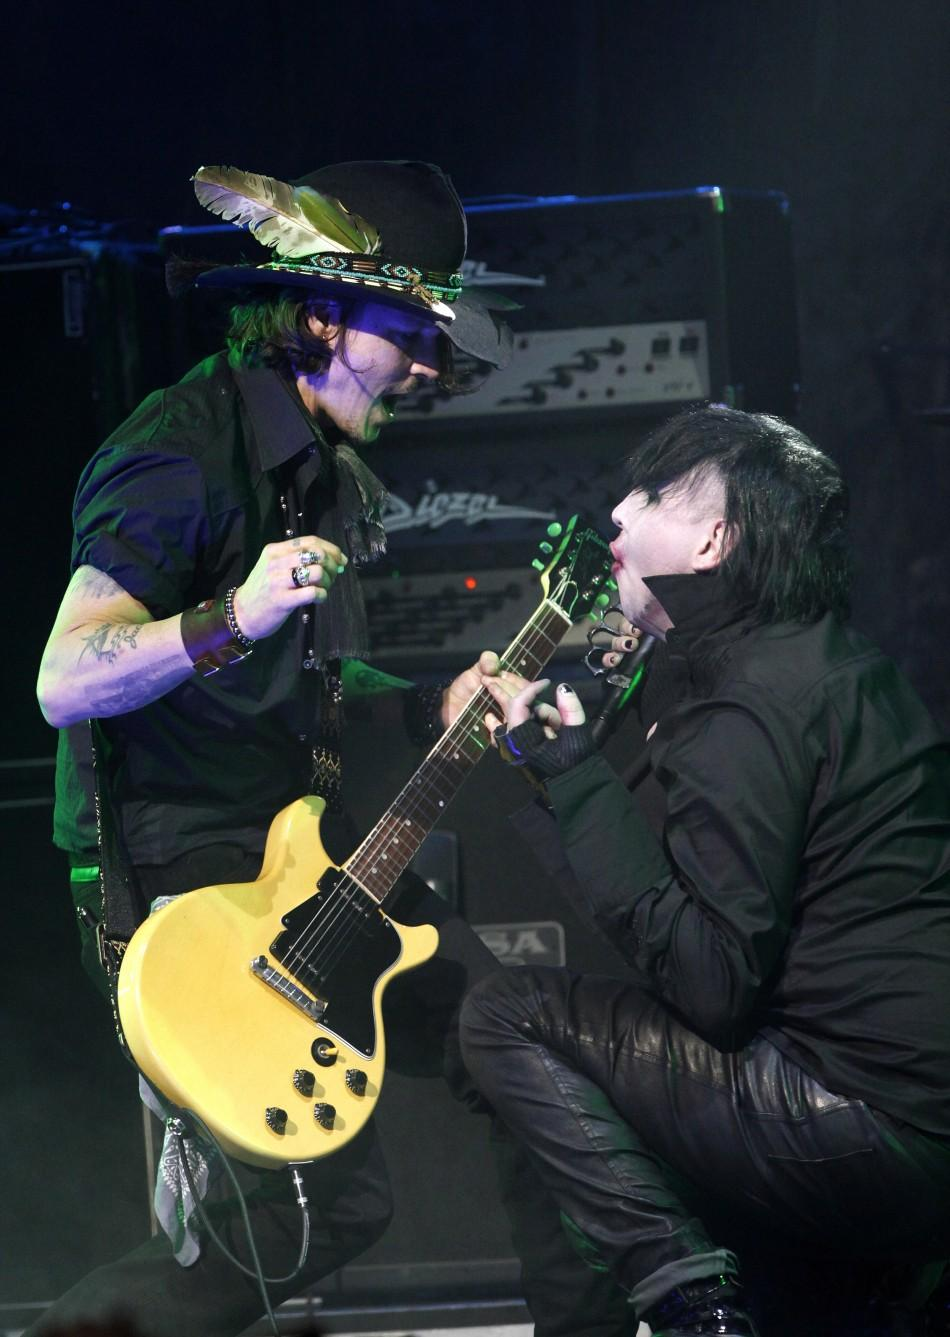 Johnny Depp and Marilyn Manson perform togther